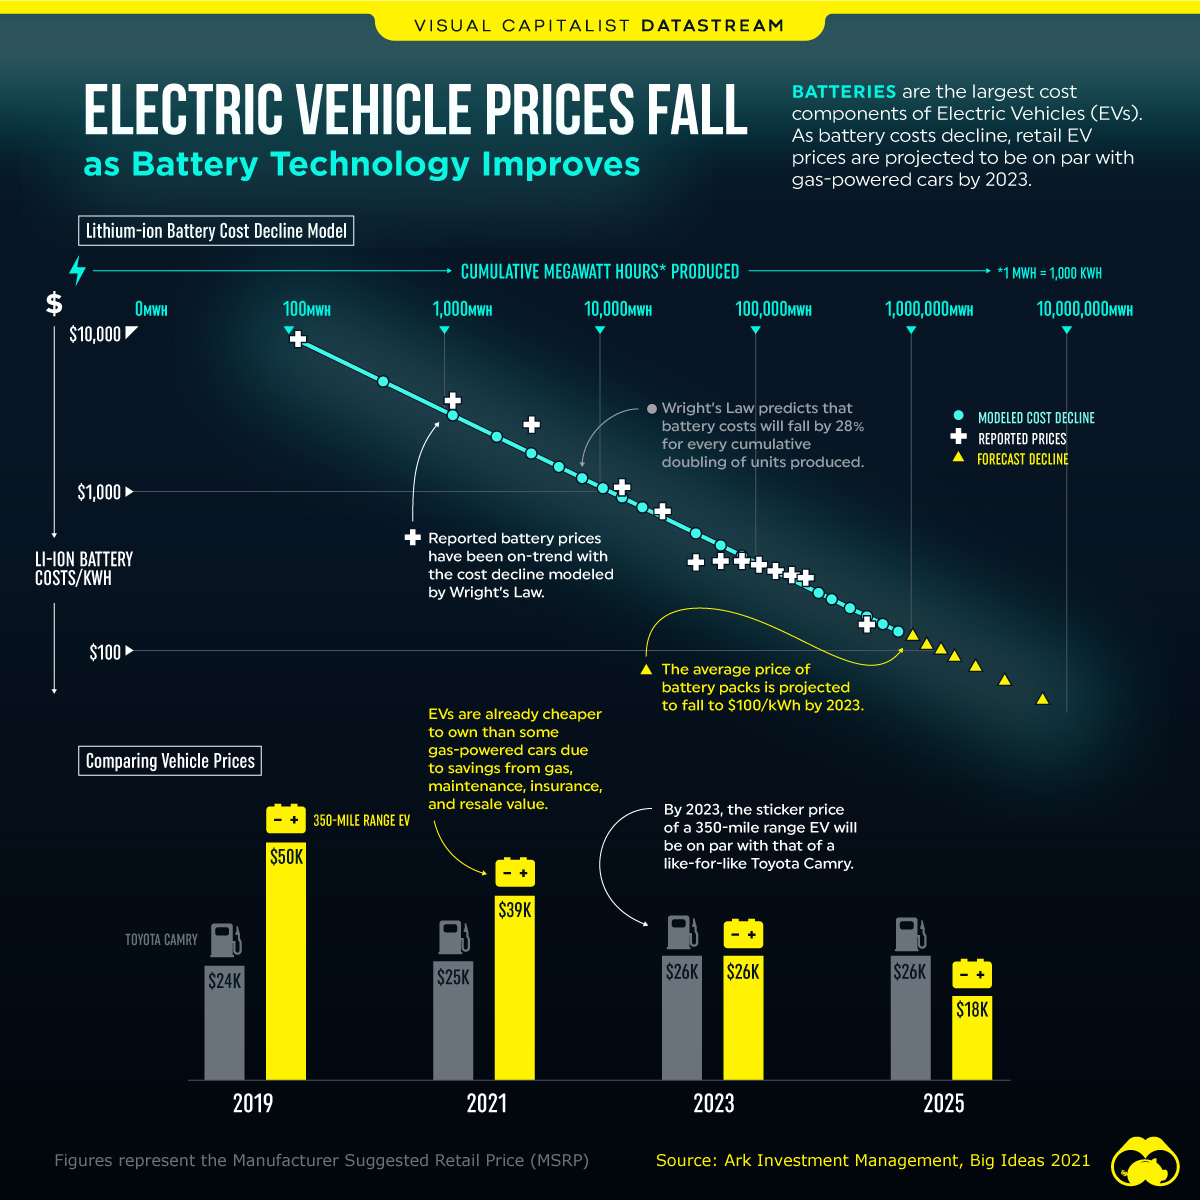 declining battery costs drive down the electric vehicles prices